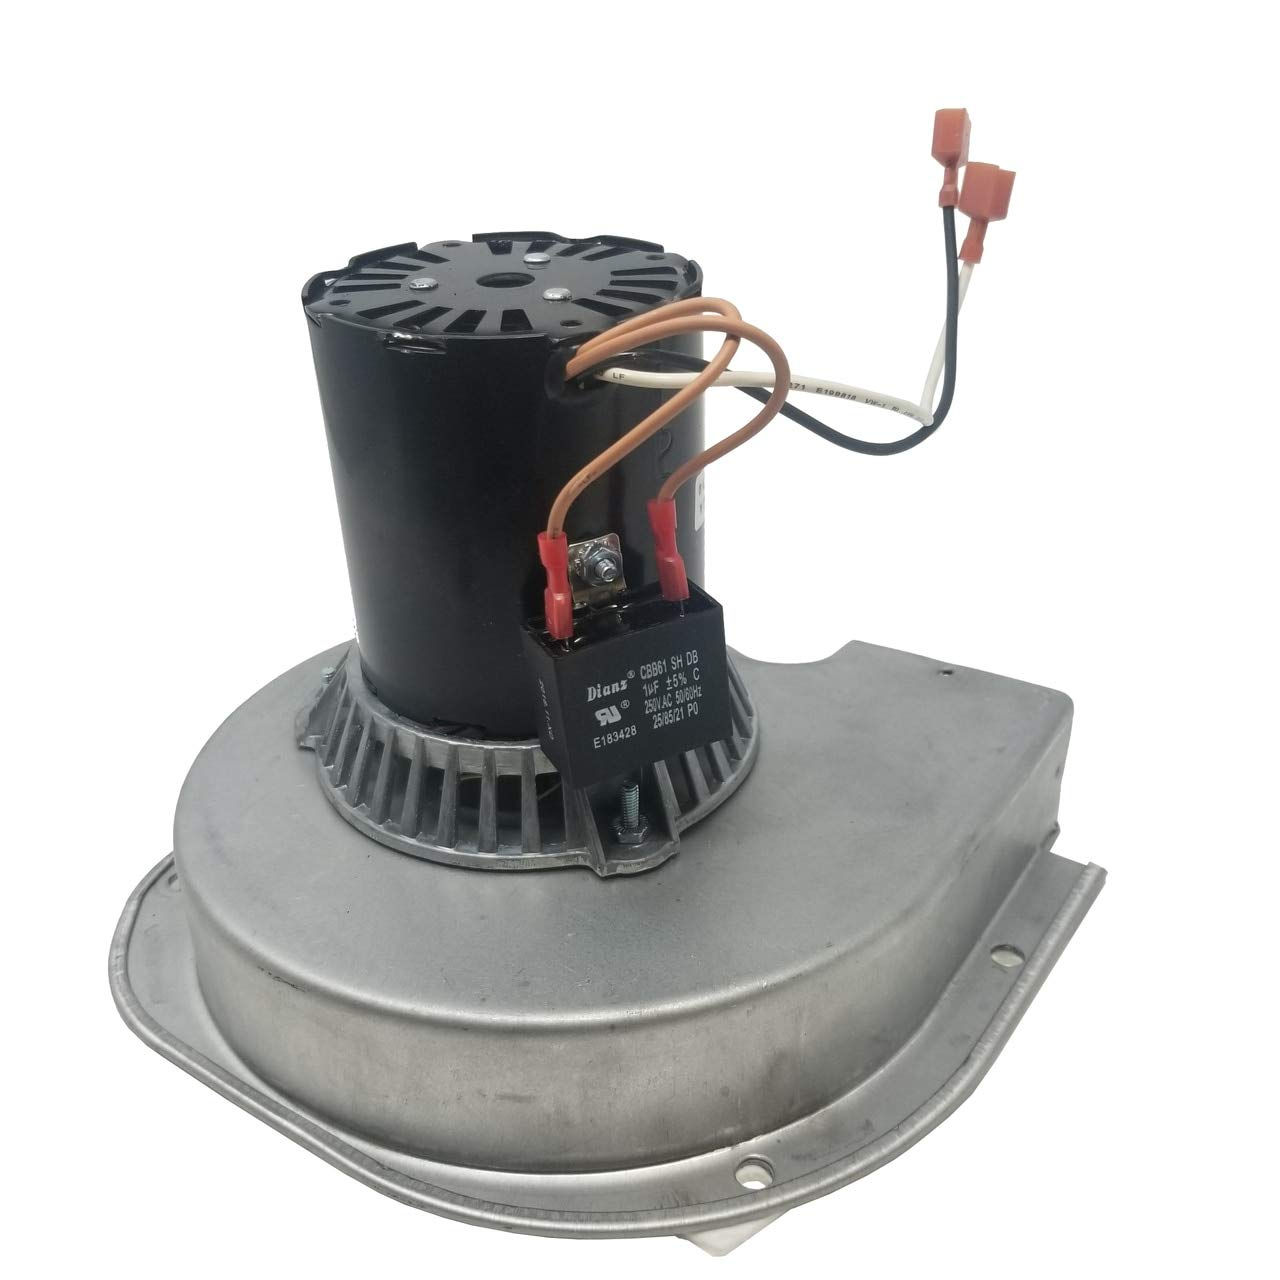 3.3 Inch Diameter Permanent Split Capacitor Centrifugal Blower | Replaces: Fasco A241 & Rheem/Ruud 7021-9567, 70-23641-81 by P-Tech (Image #5)